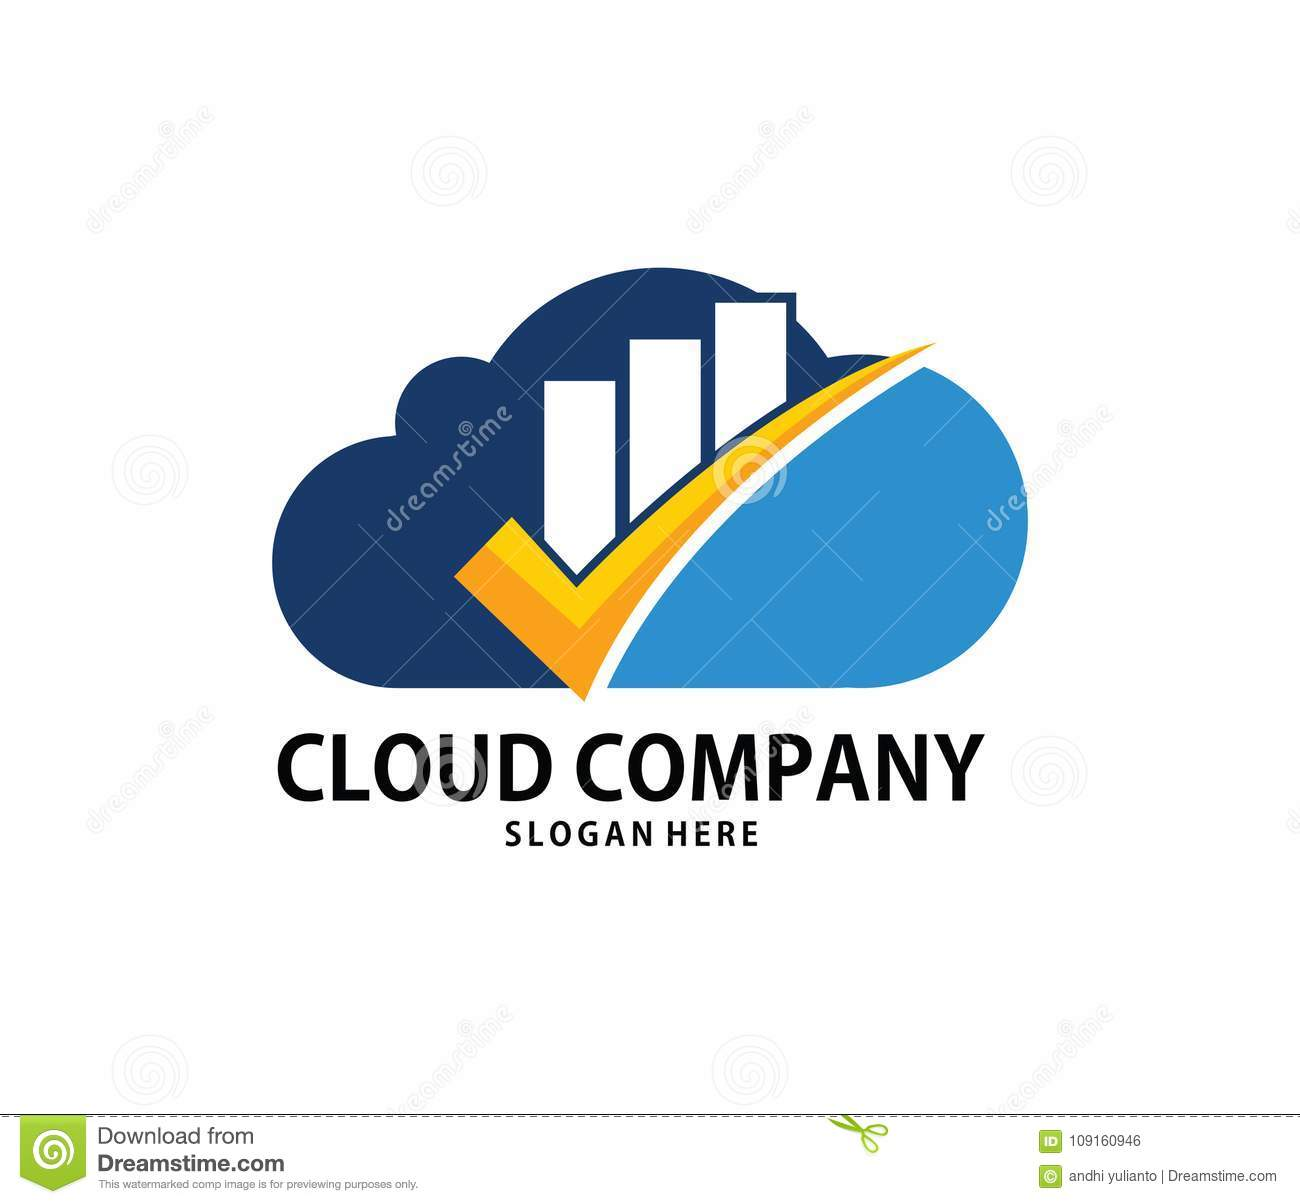 Incroyable Vector Finance Goal Check Mark Cloud Online Cloud Storage Logo Design